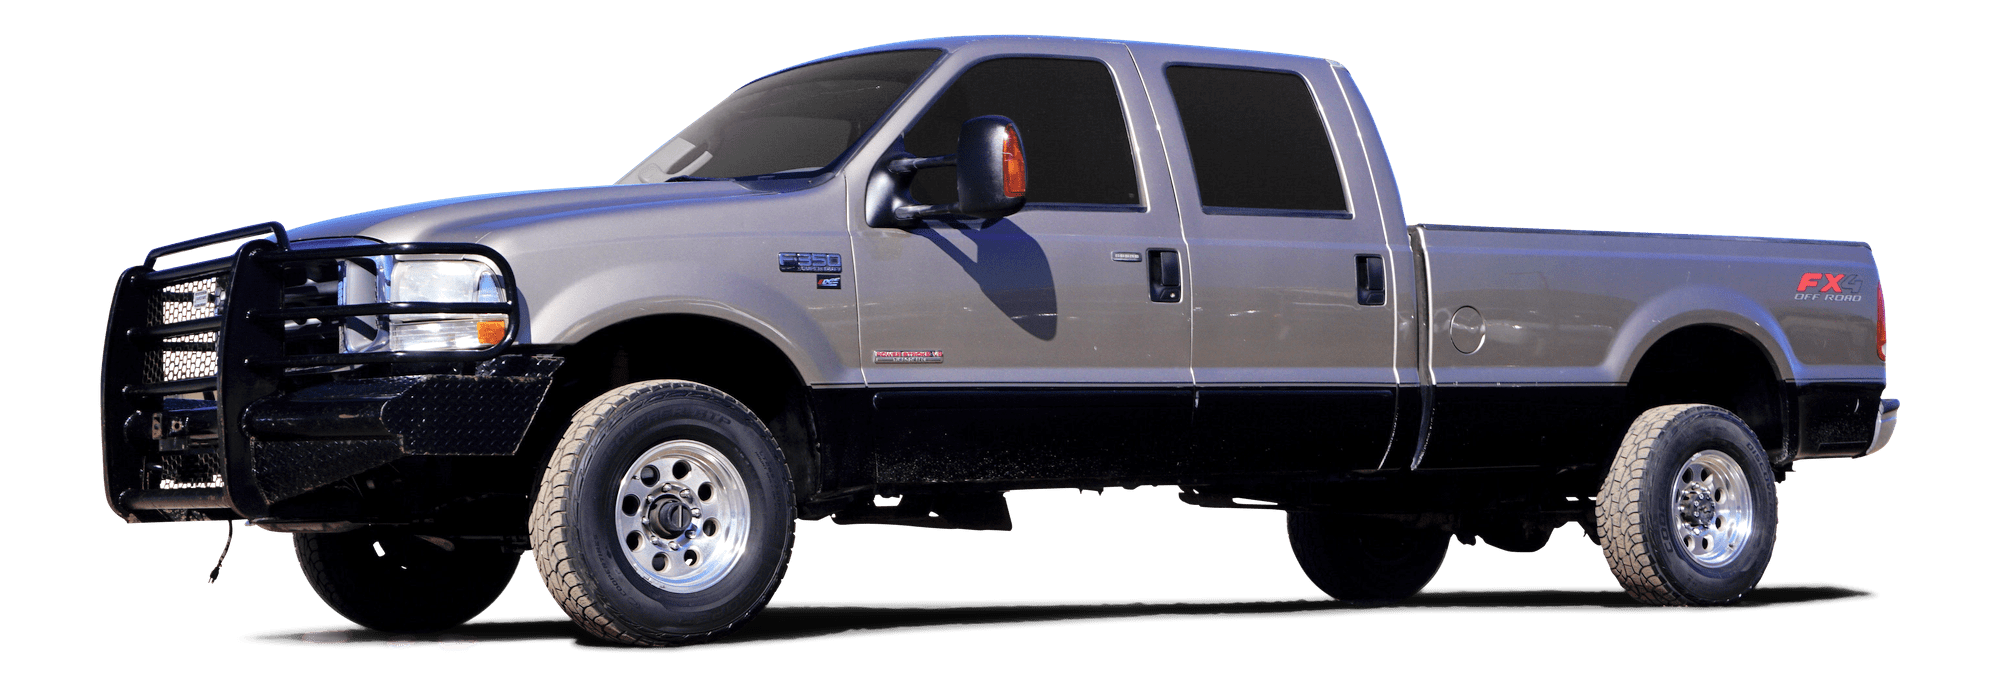 2004 Ford F350